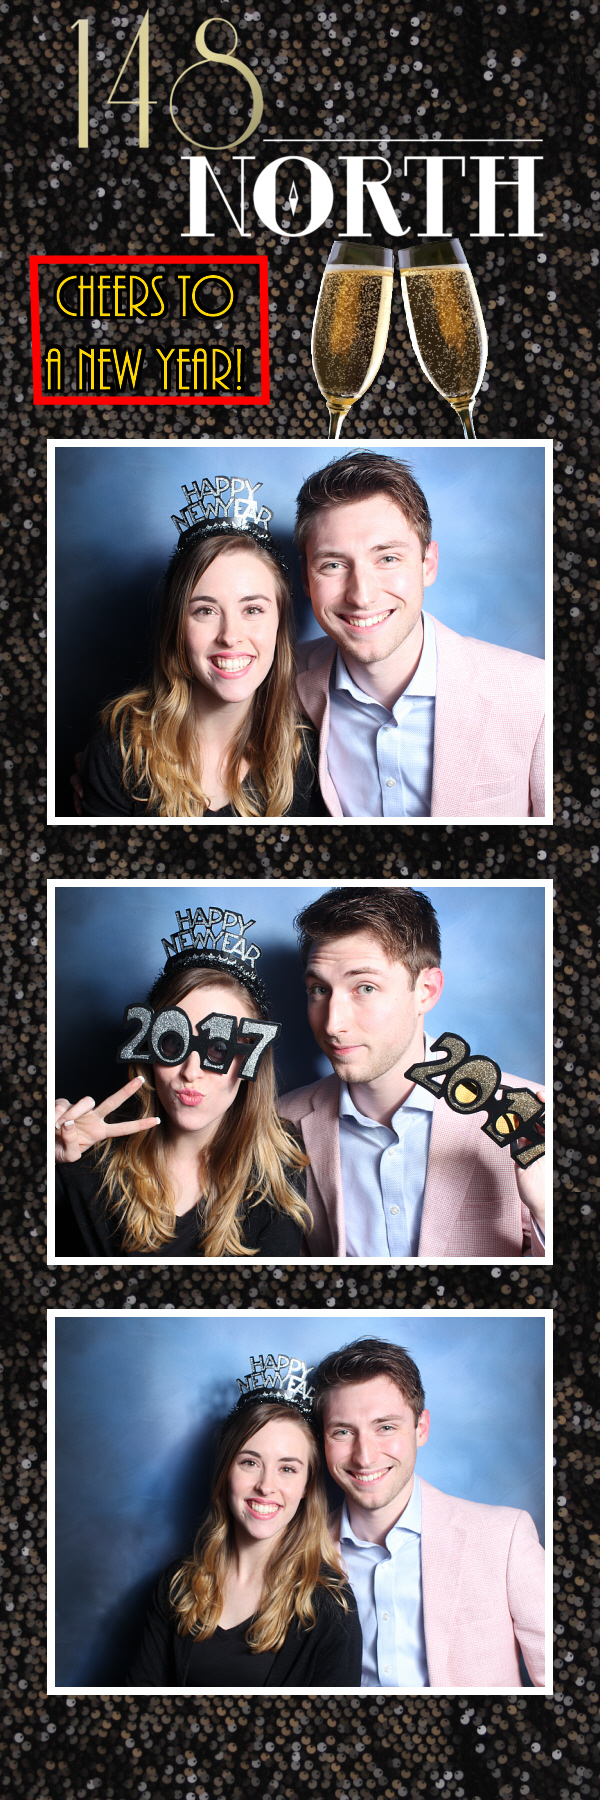 9photo1booth